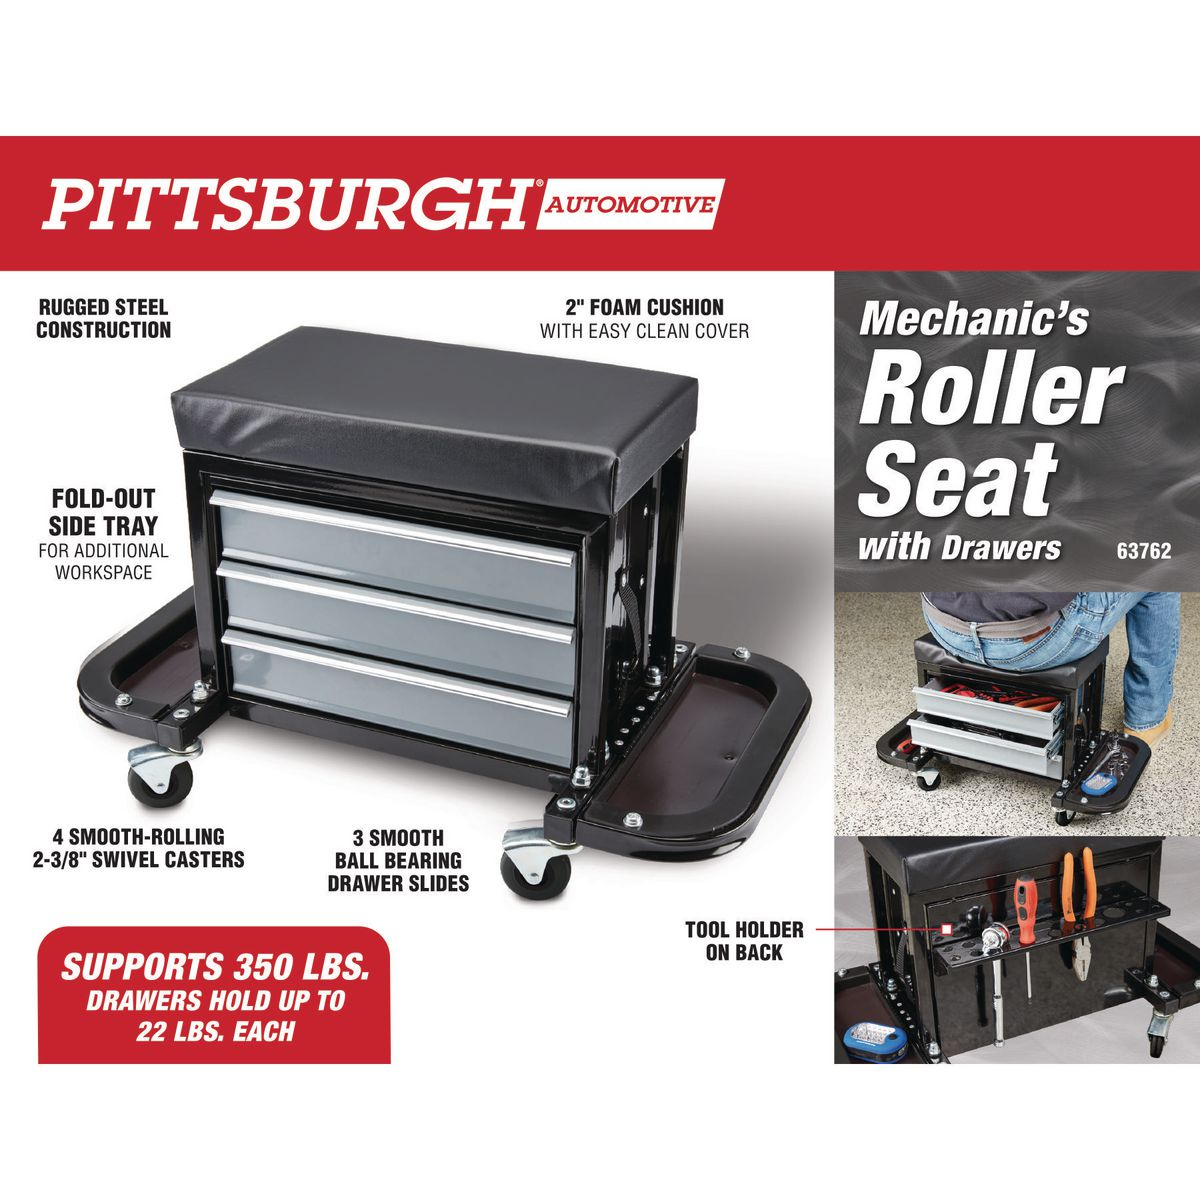 Mechanic S Roller Seat With Drawers